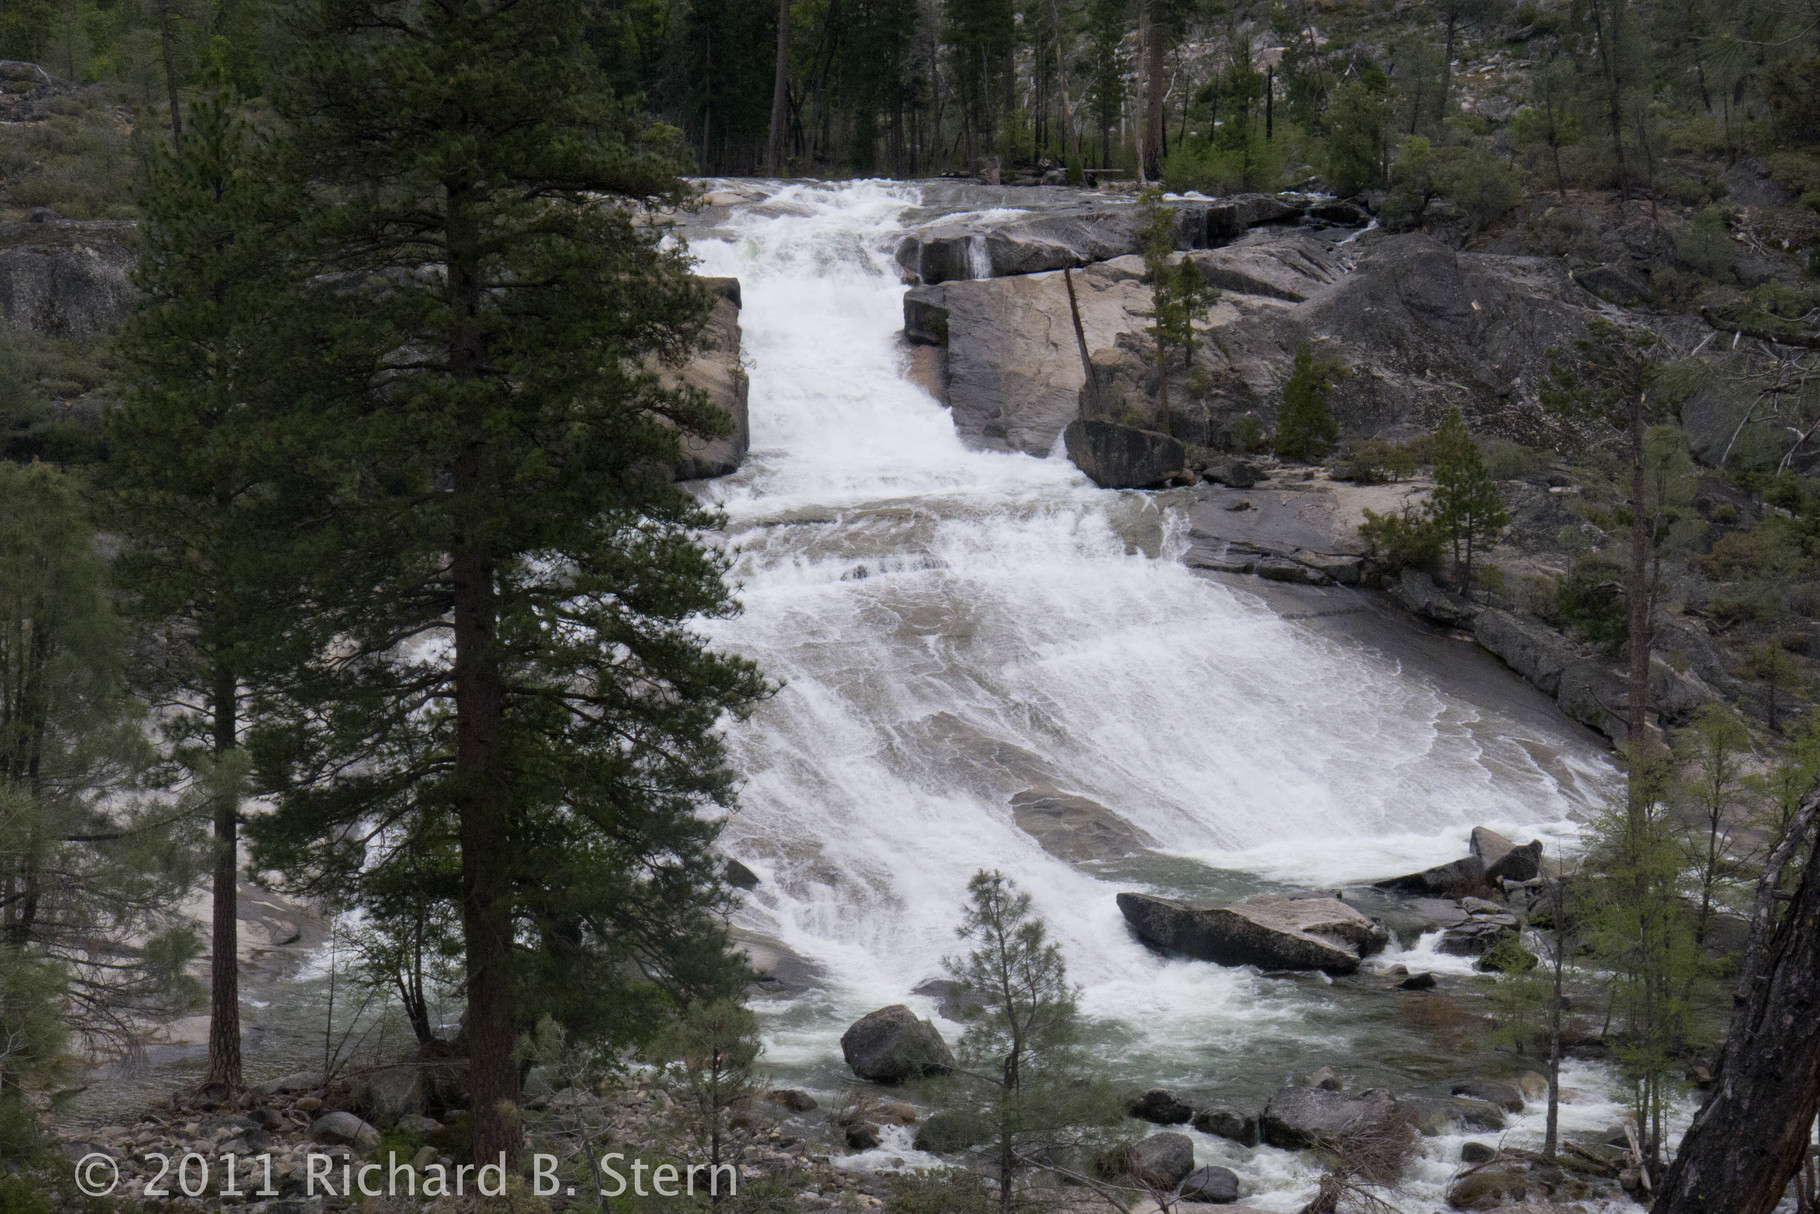 Rancheria Falls Backpack Trip-Yosemite National Park